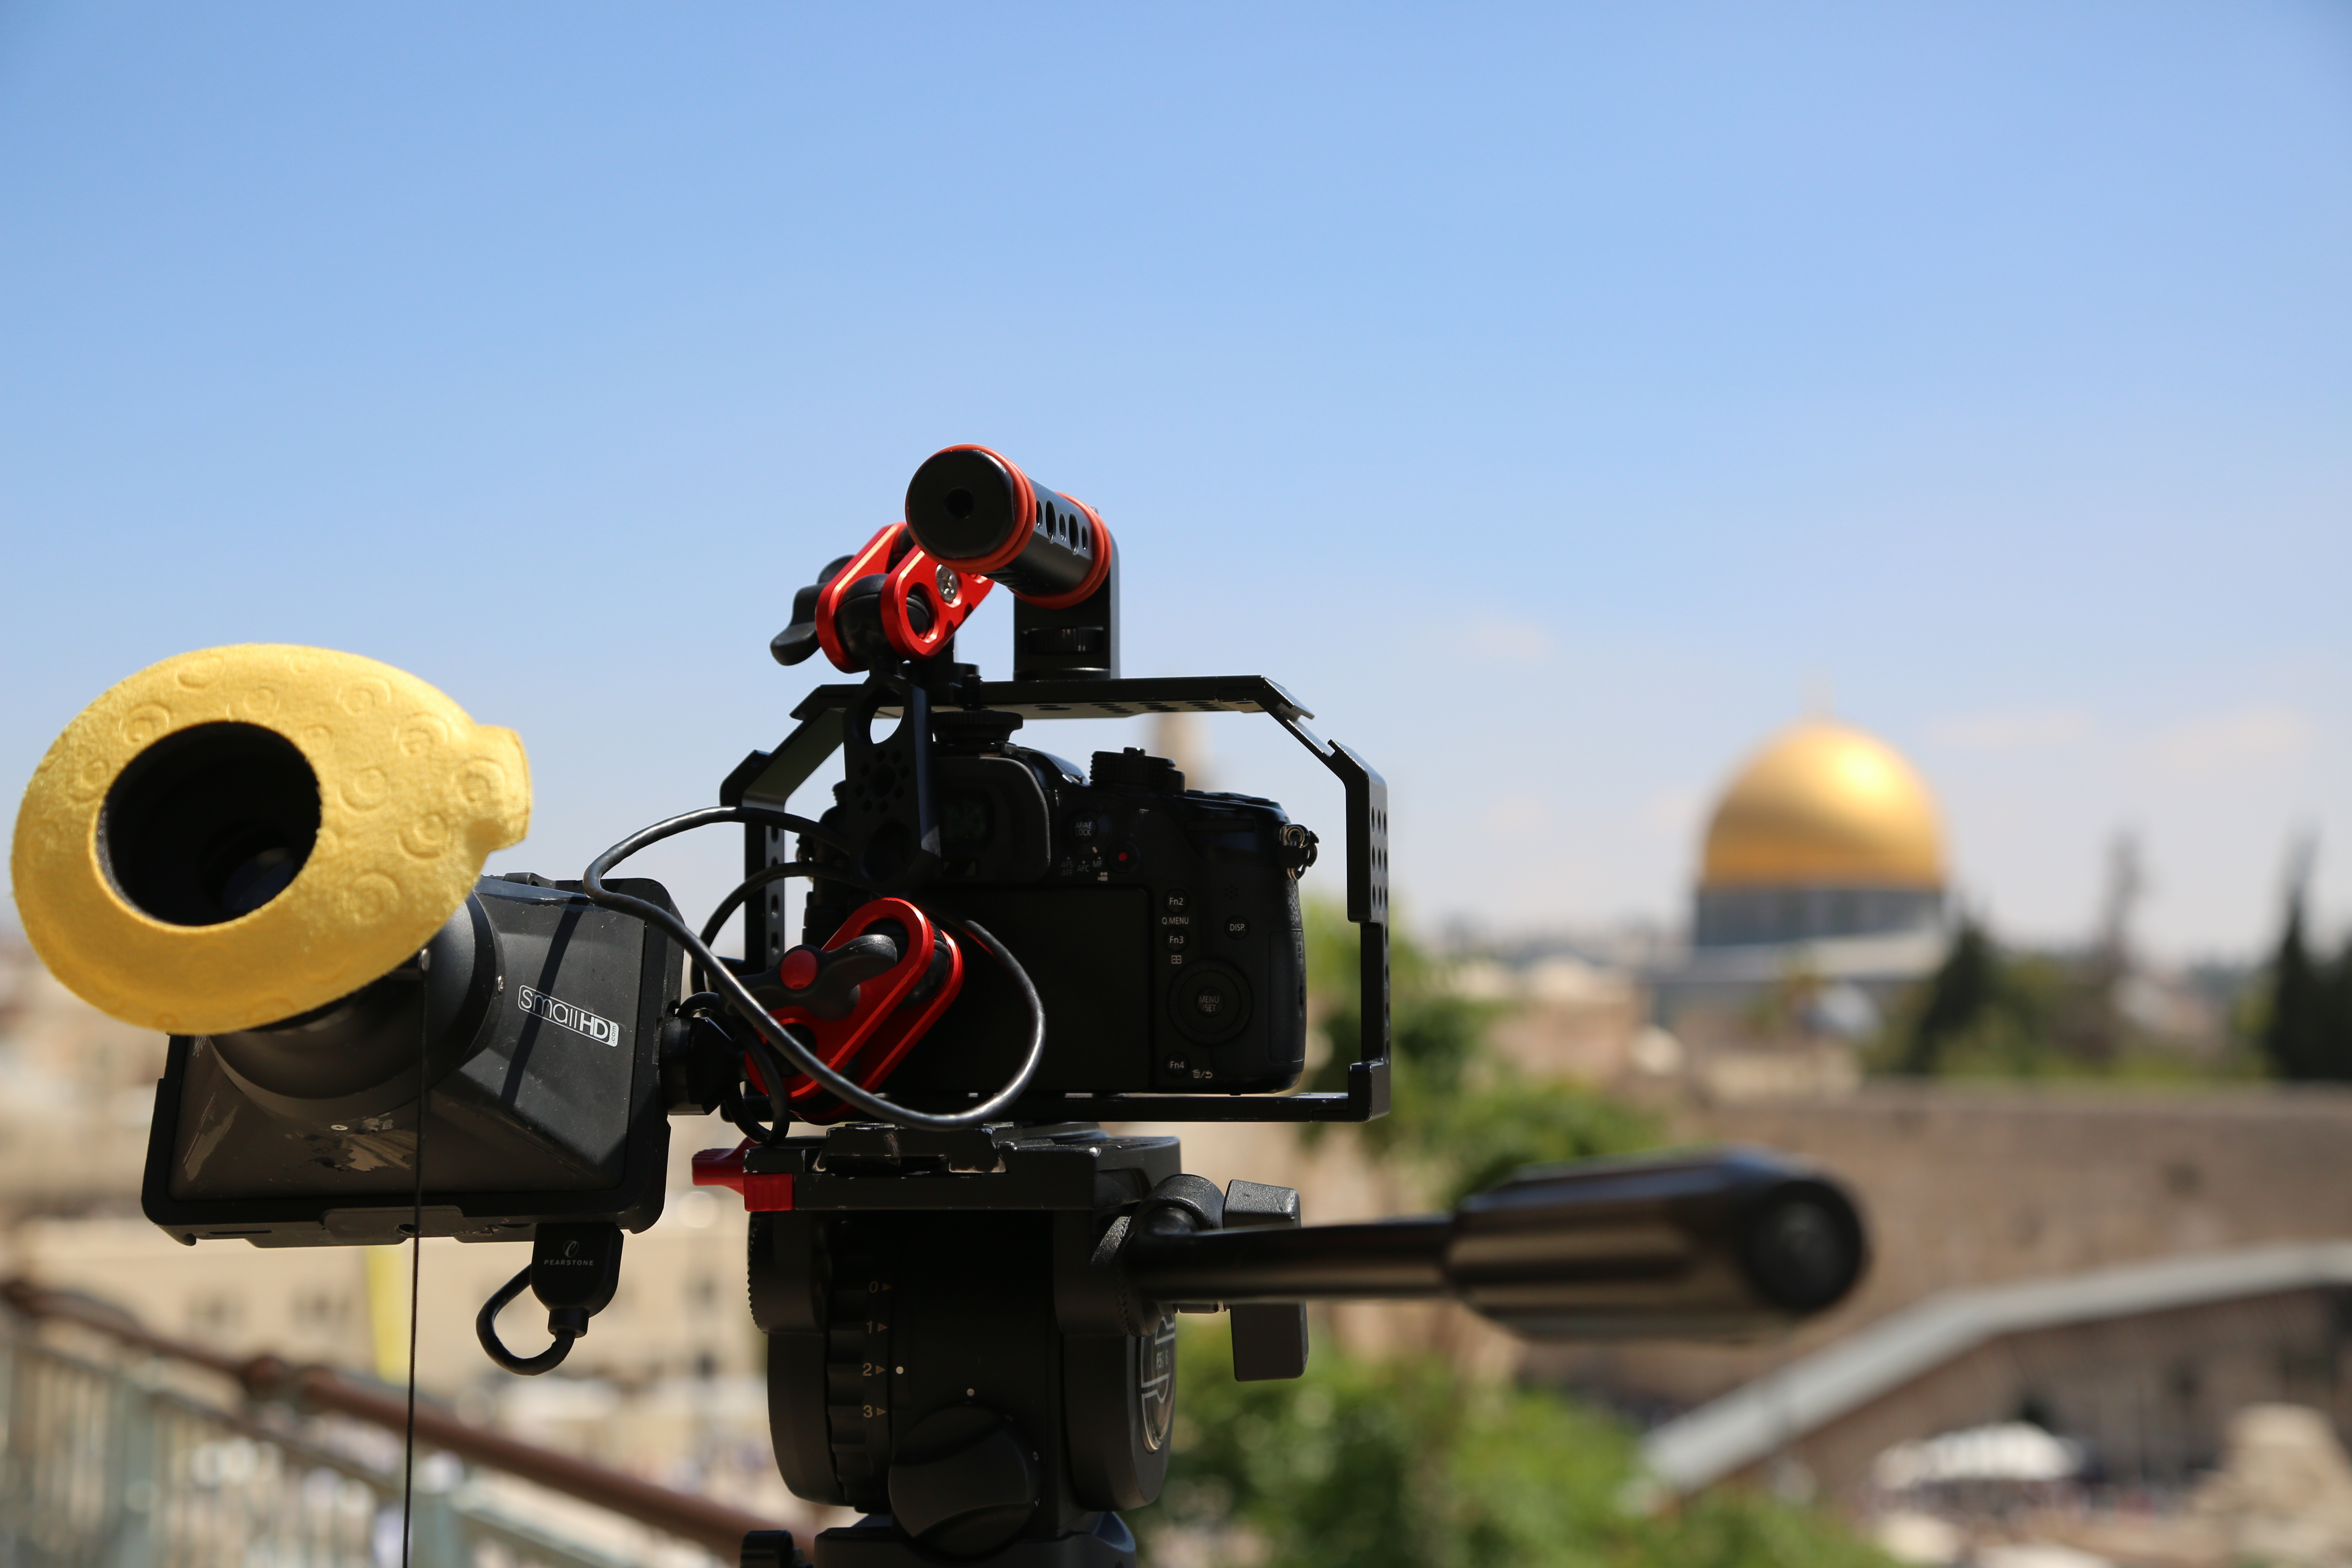 Production services in Israel